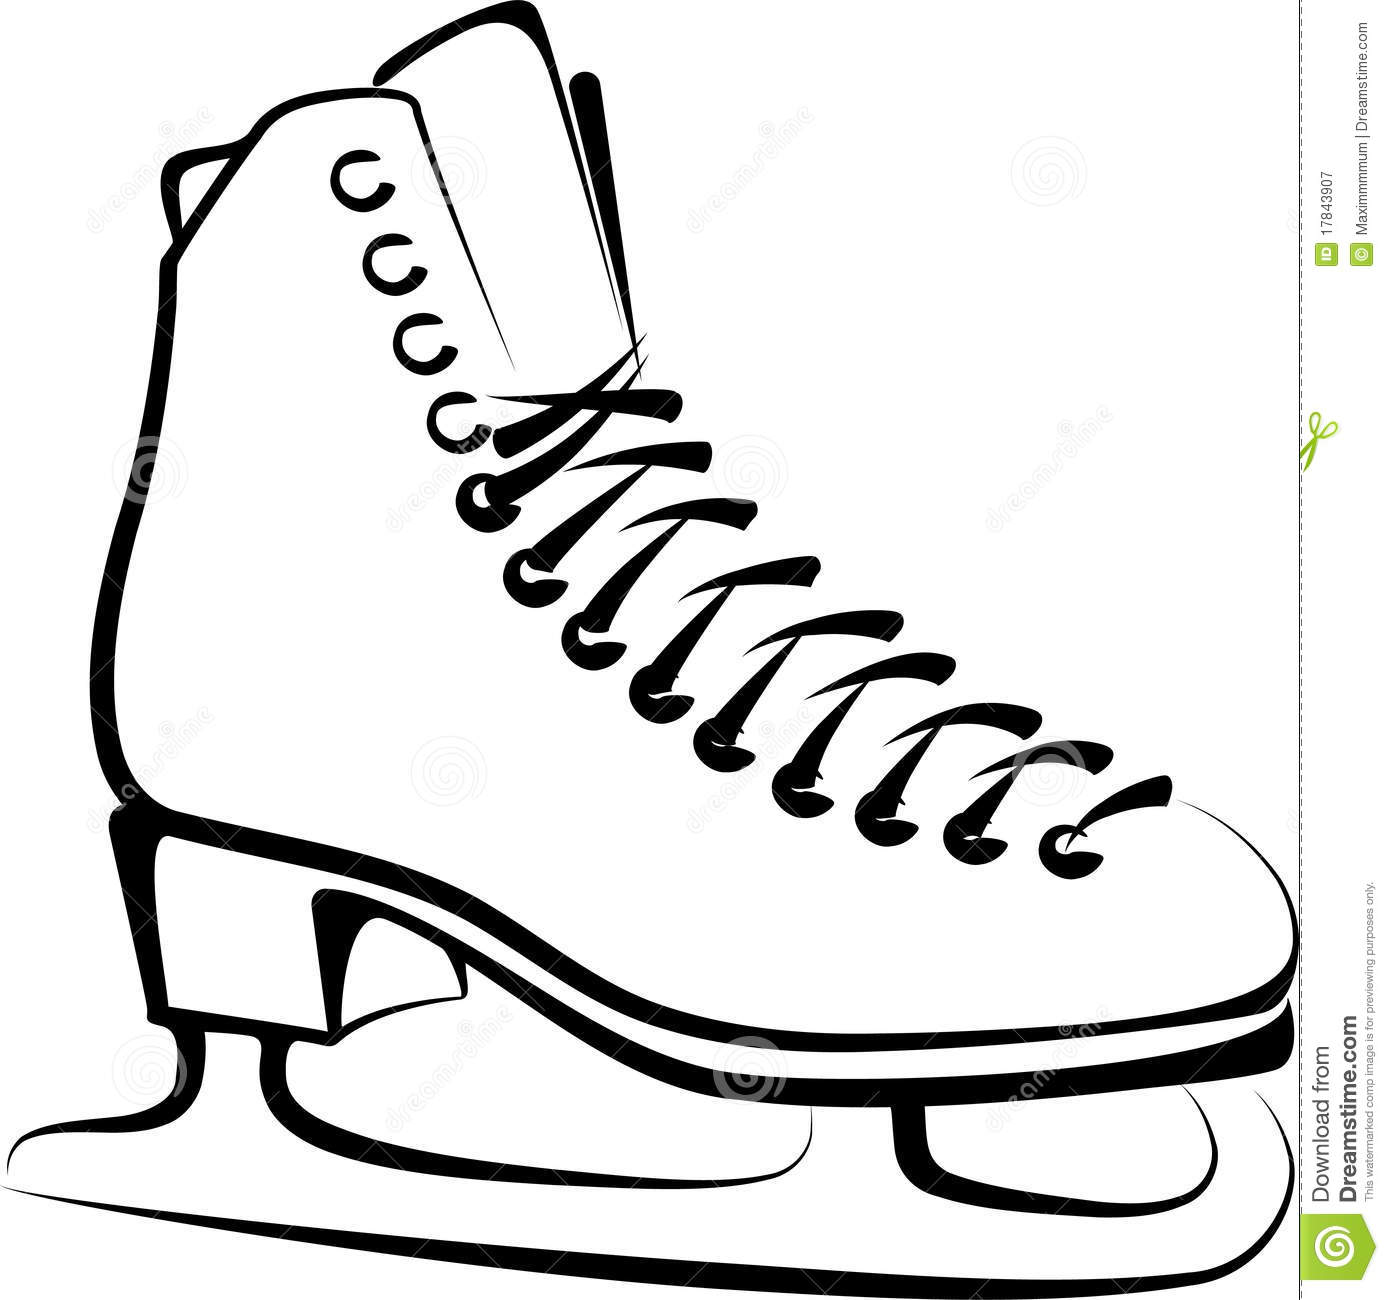 1389x1300 Blade Clipart Ice Skating